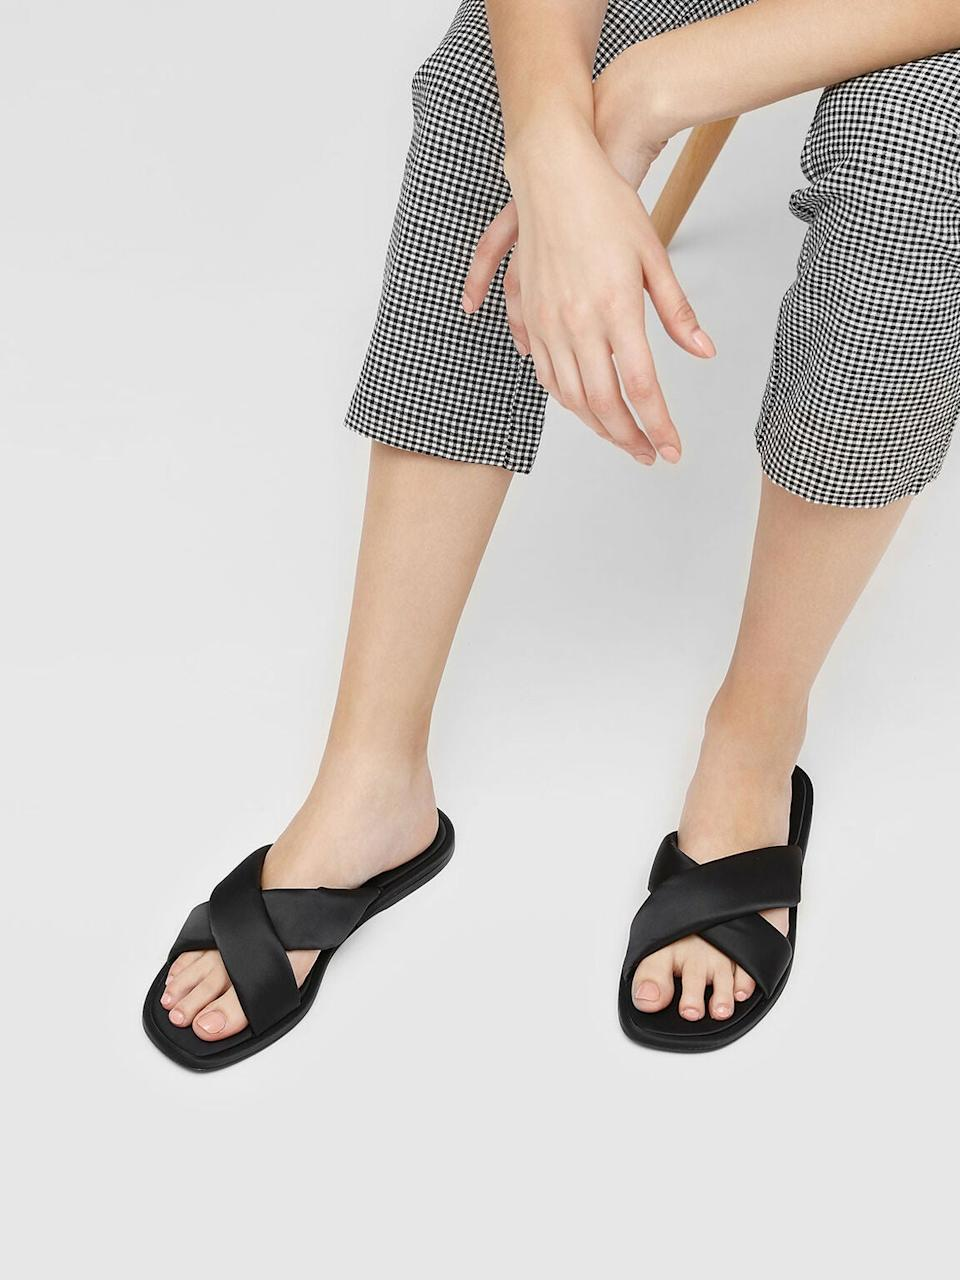 """<h2>Charles & Keith</h2><br><strong>Deal: Up To 50% Off</strong><br>Hundreds of sandals on sale for under $50 — you'll want to grab a refreshment before you peruse this discount party.<br><br><em>Shop <strong><a href=""""https://www.charleskeith.com/us/sale/shoes"""" rel=""""nofollow noopener"""" target=""""_blank"""" data-ylk=""""slk:Charles & Keith"""" class=""""link rapid-noclick-resp"""">Charles & Keith</a></strong></em><br><br><strong>Charles & Keith</strong> Puffed Crossband Sliders, $, available at <a href=""""https://go.skimresources.com/?id=30283X879131&url=https%3A%2F%2Fwww.charleskeith.com%2Fus%2FCK1-70030038.html%3Fdwvar_CK1-70030038_color%3D01"""" rel=""""nofollow noopener"""" target=""""_blank"""" data-ylk=""""slk:Charles & Keith"""" class=""""link rapid-noclick-resp"""">Charles & Keith</a>"""